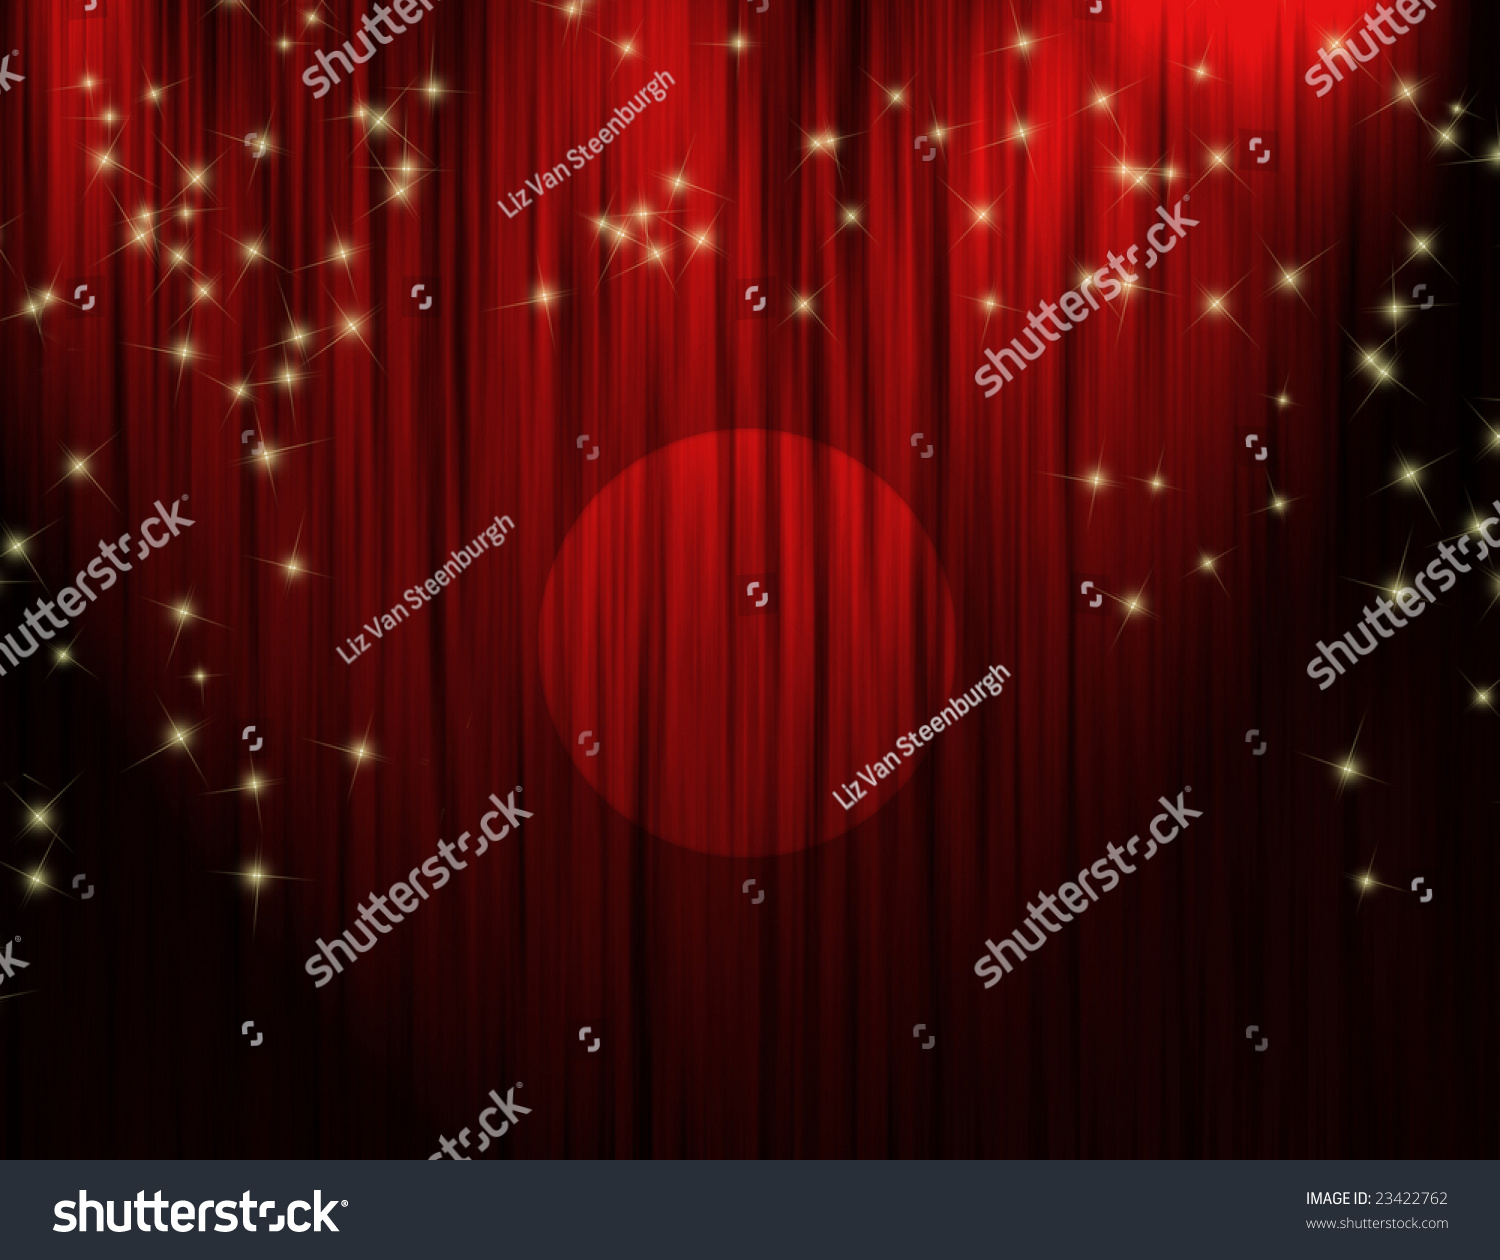 Big event red curtains with spotlight stock photo getty images - Red Theater Curtains With Dramatic Stage Lighting Sparkling Stars And Spotlight